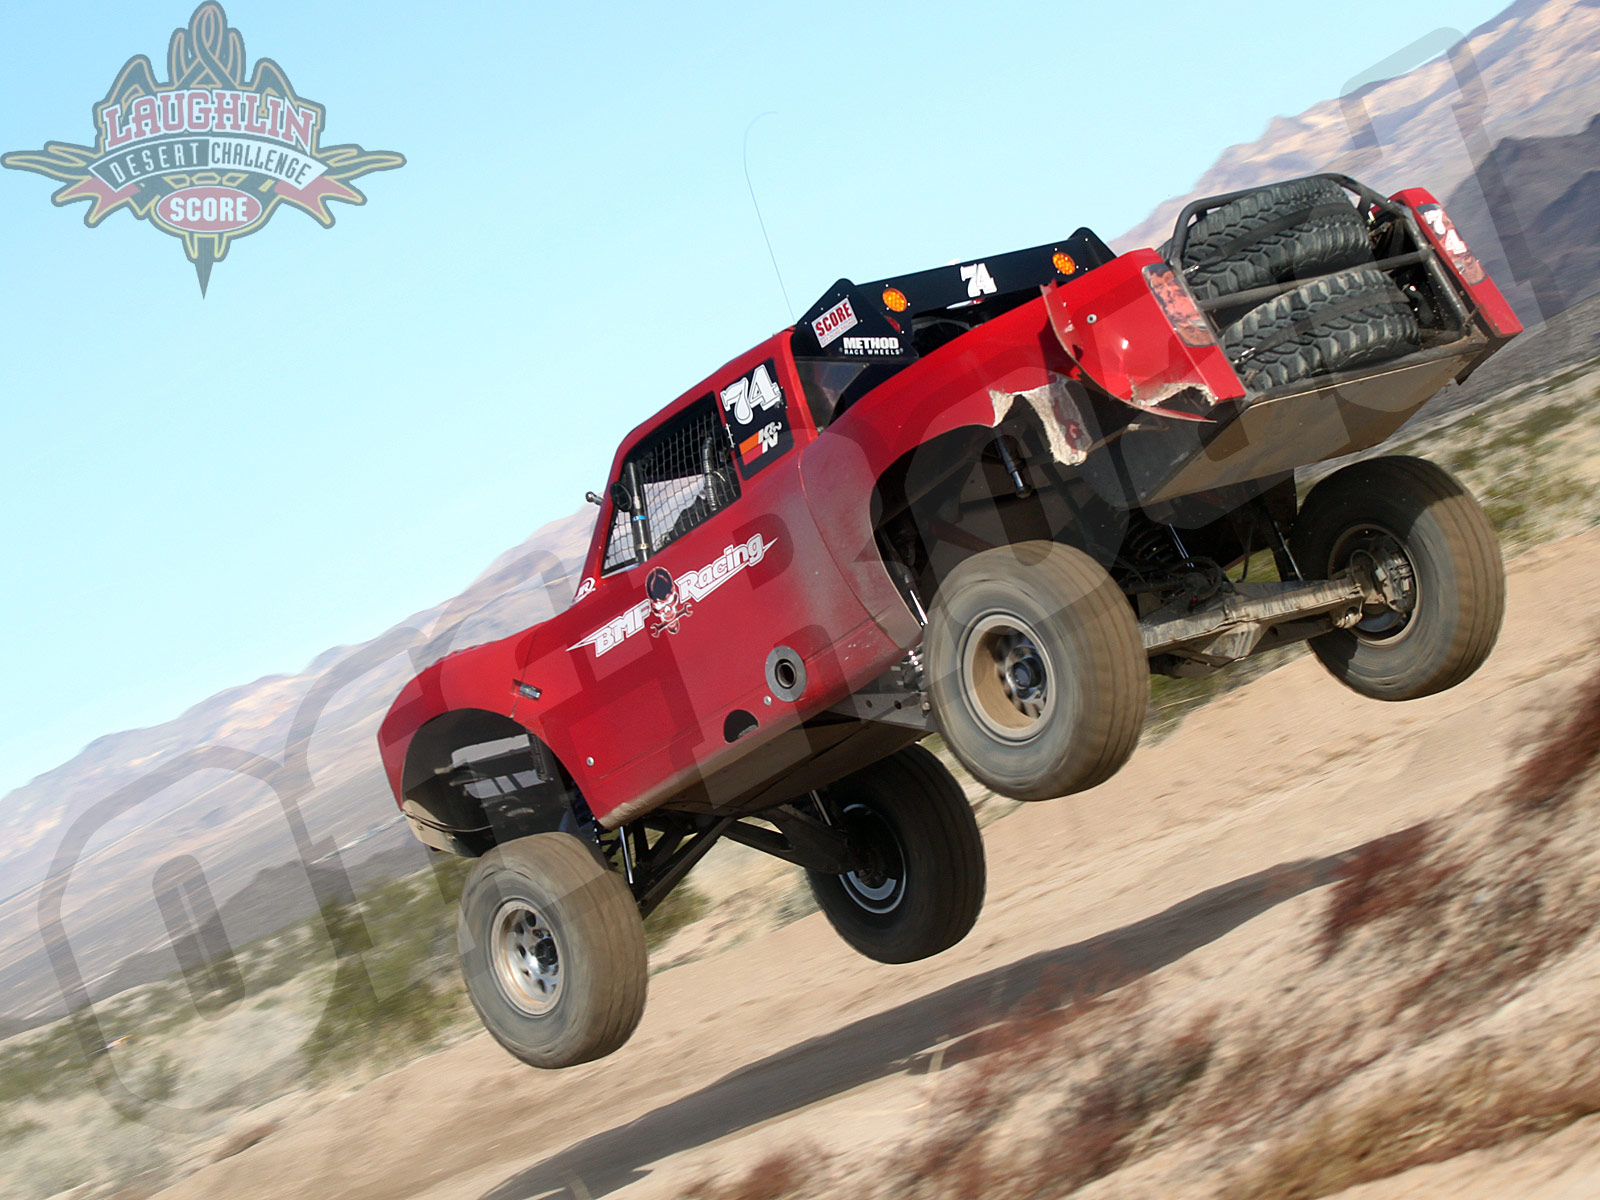 030311or 6779+2011 score laughlin desert challenge+trophy trucks sunday